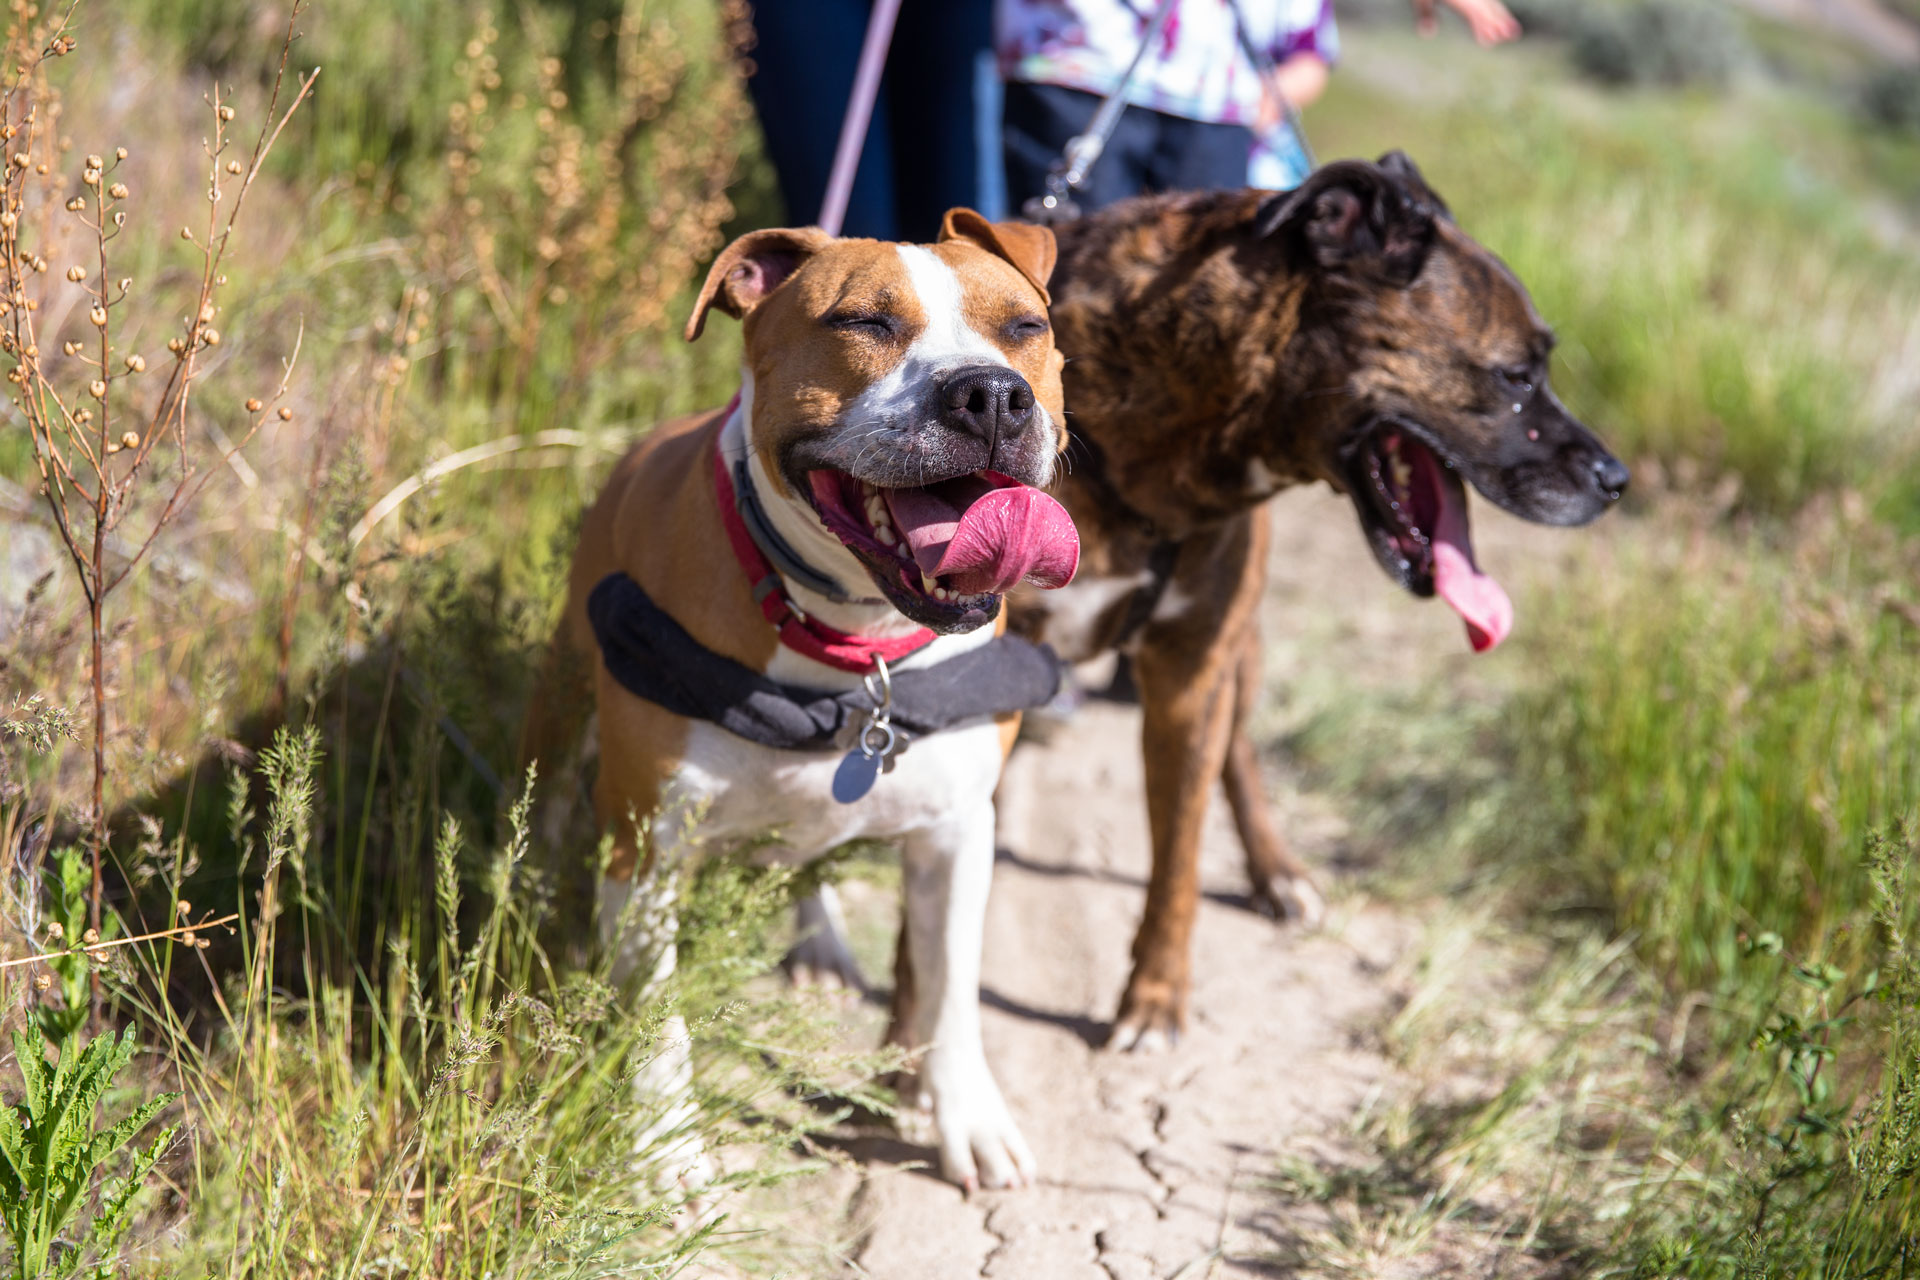 Two dogs looking towards the camera and smiling while on a hike